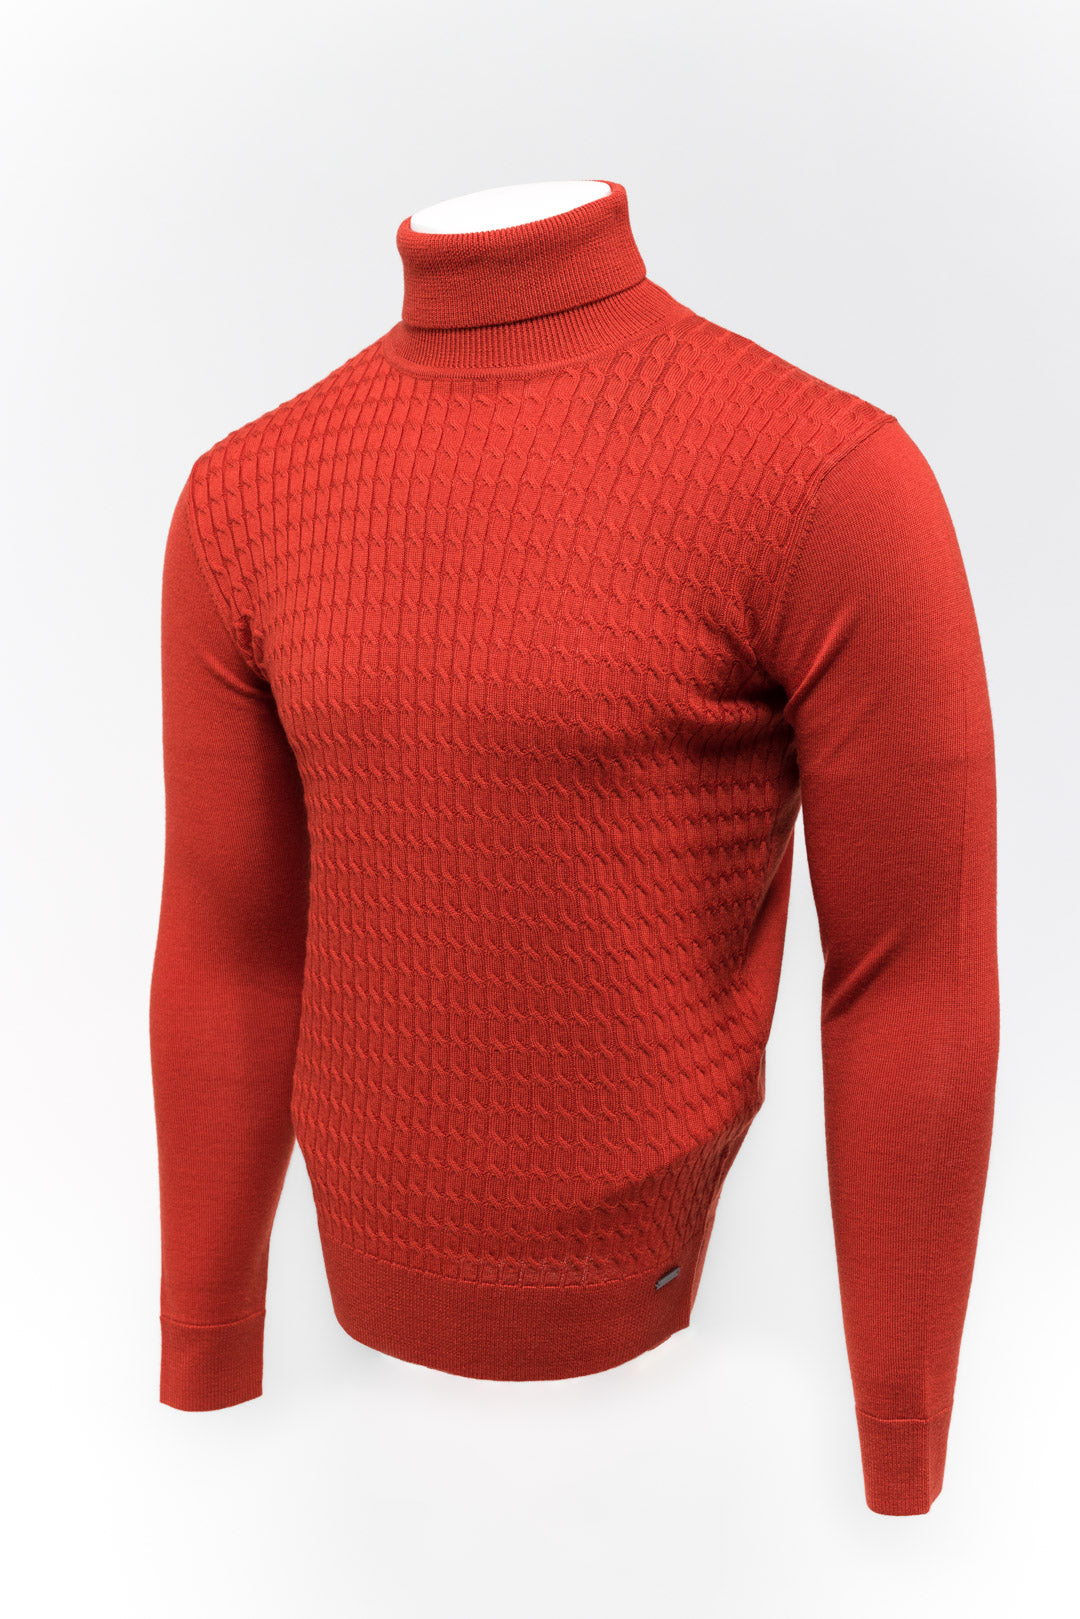 Roll Neck Gentiluomo Orange